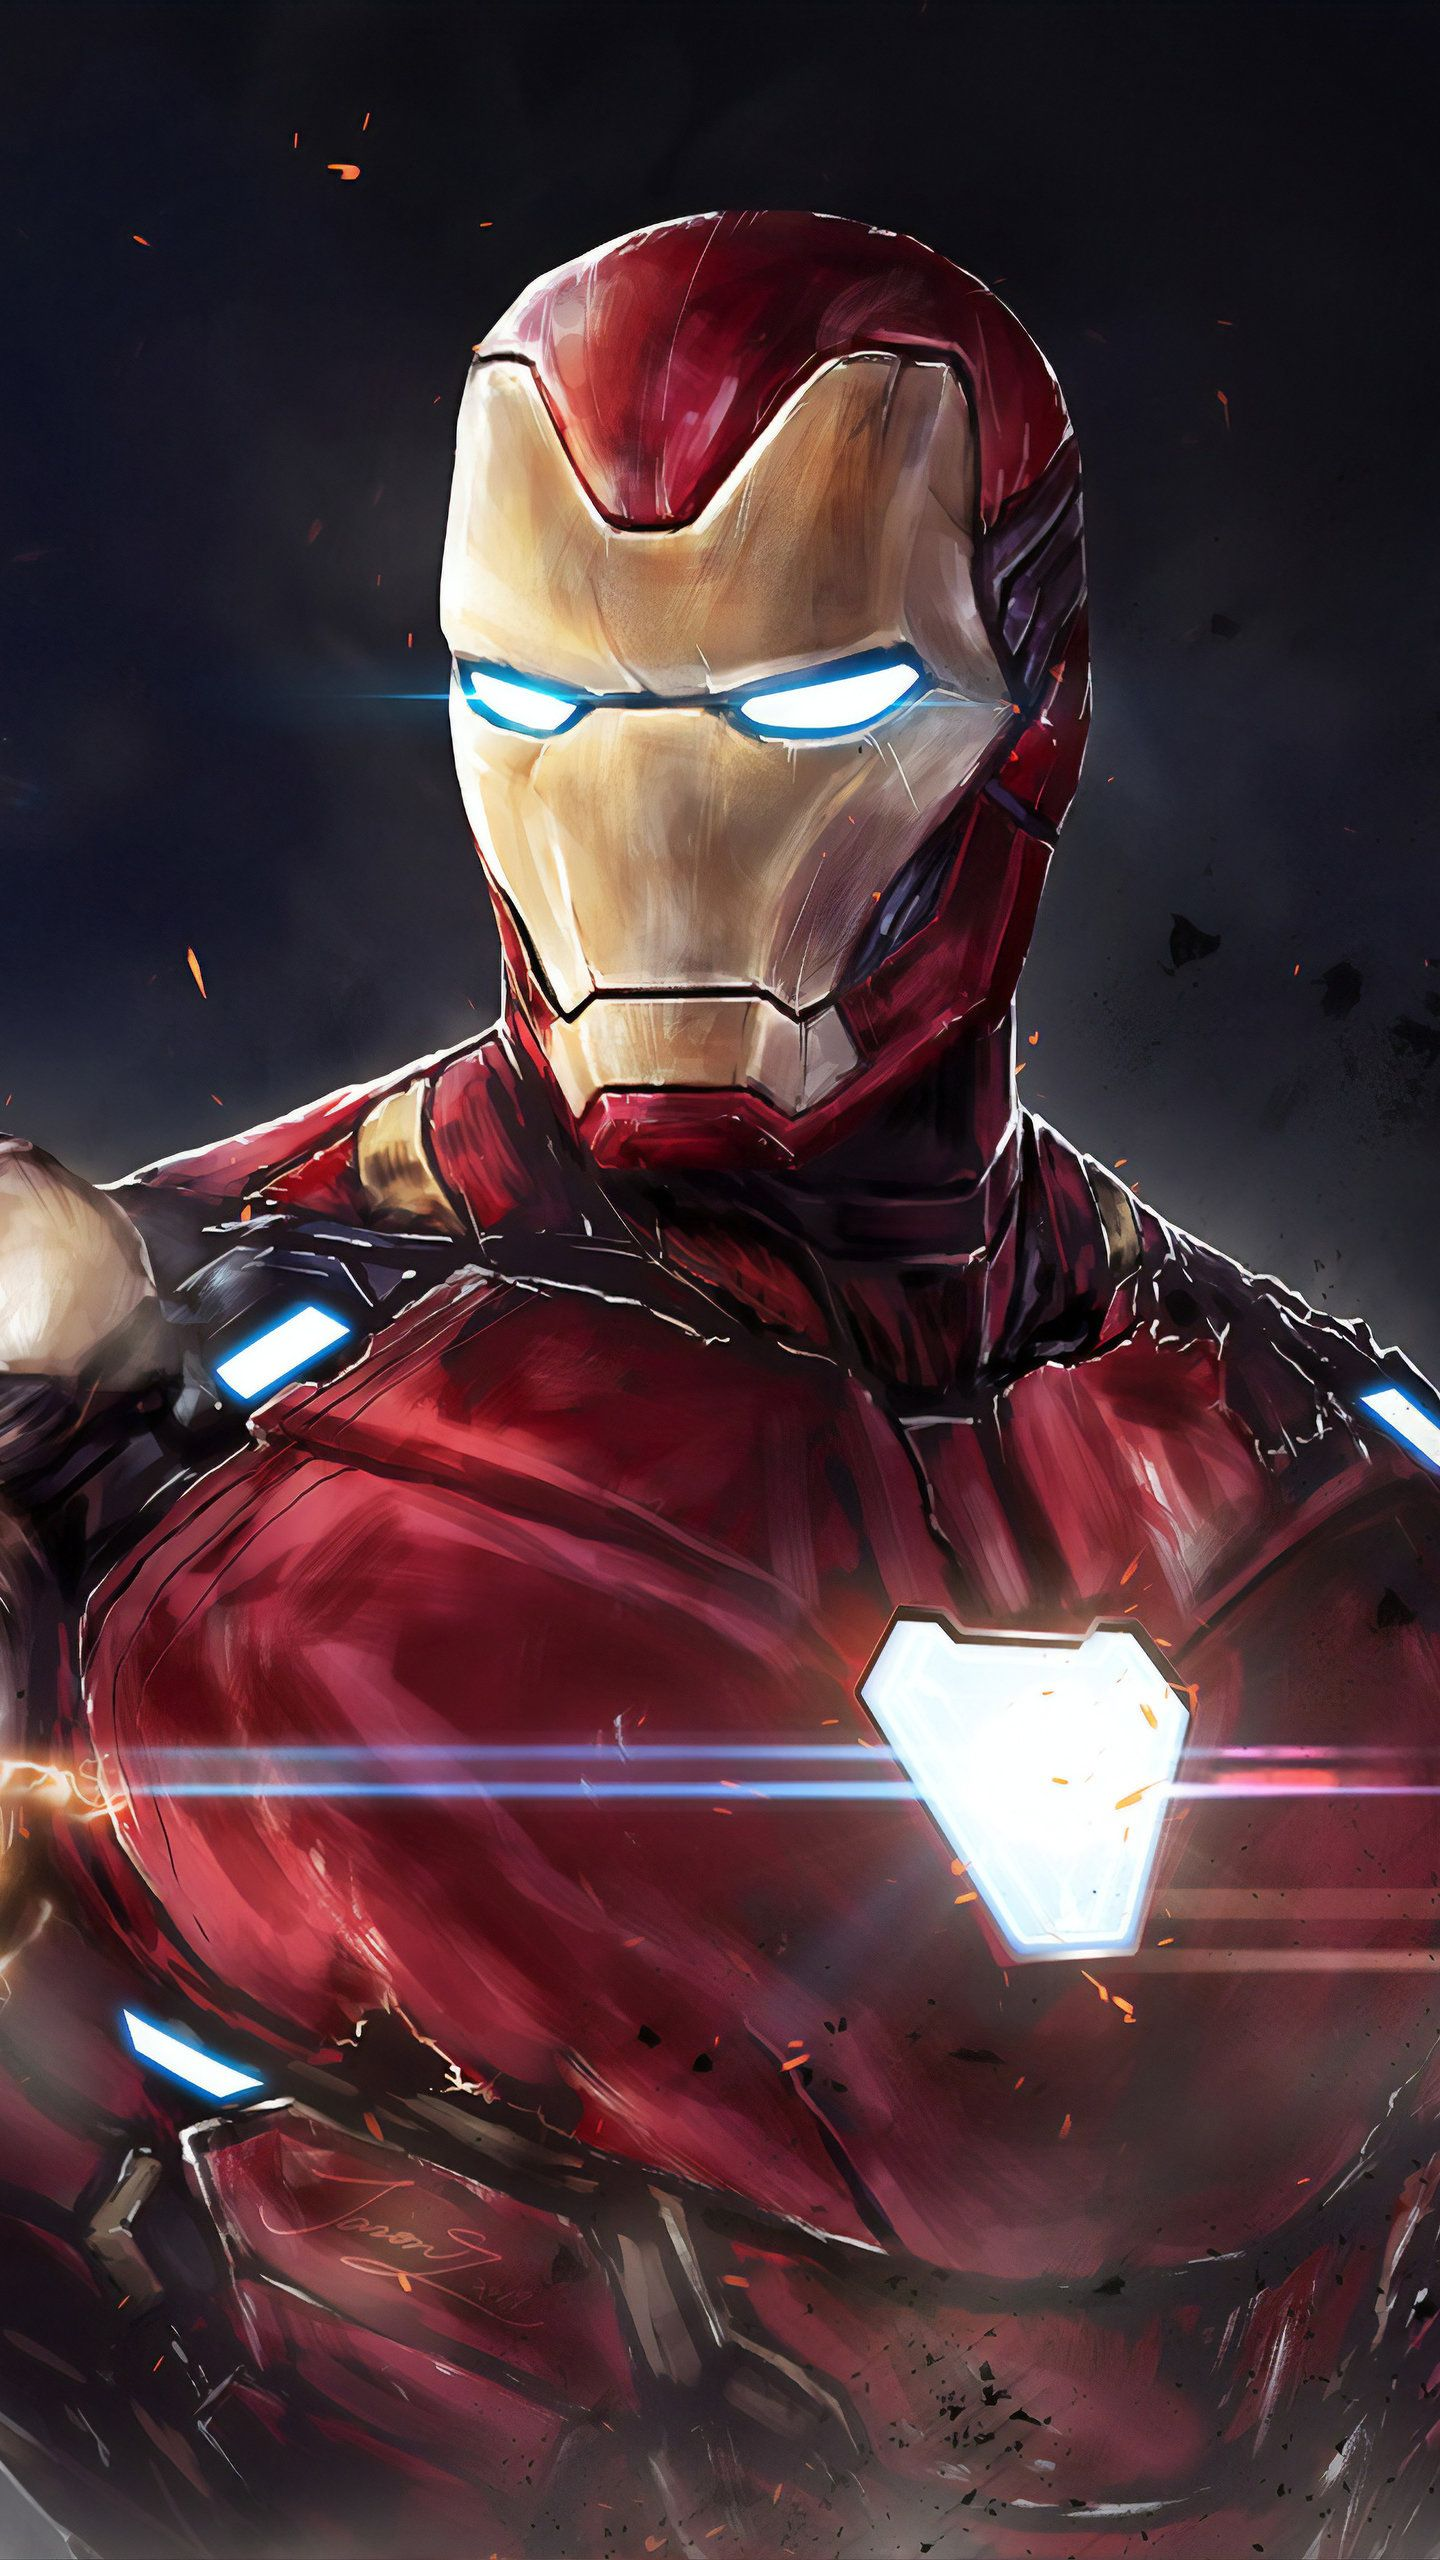 I Am Iron Man 4k Hd Superheroes Wallpapers Photos And Pictures Marvel Superhero Posters Marvel Iron Man Iron Man Art Spiderman iron man hologram iphone 11